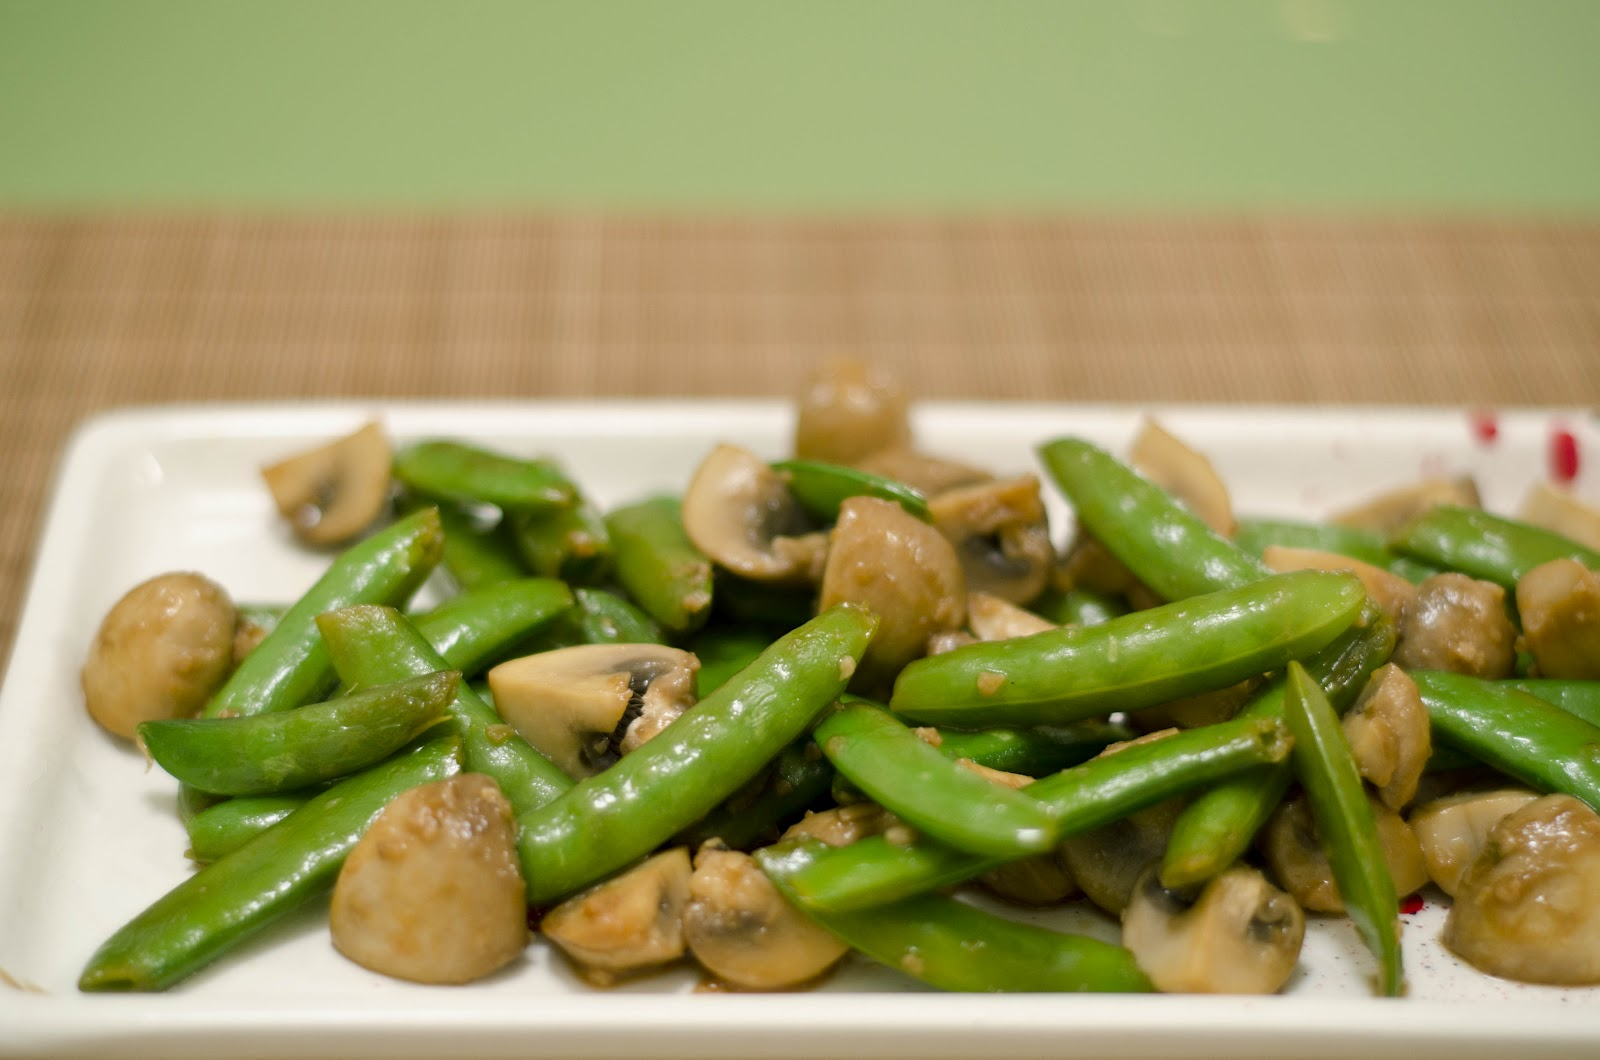 how to cook snap peas in microwave